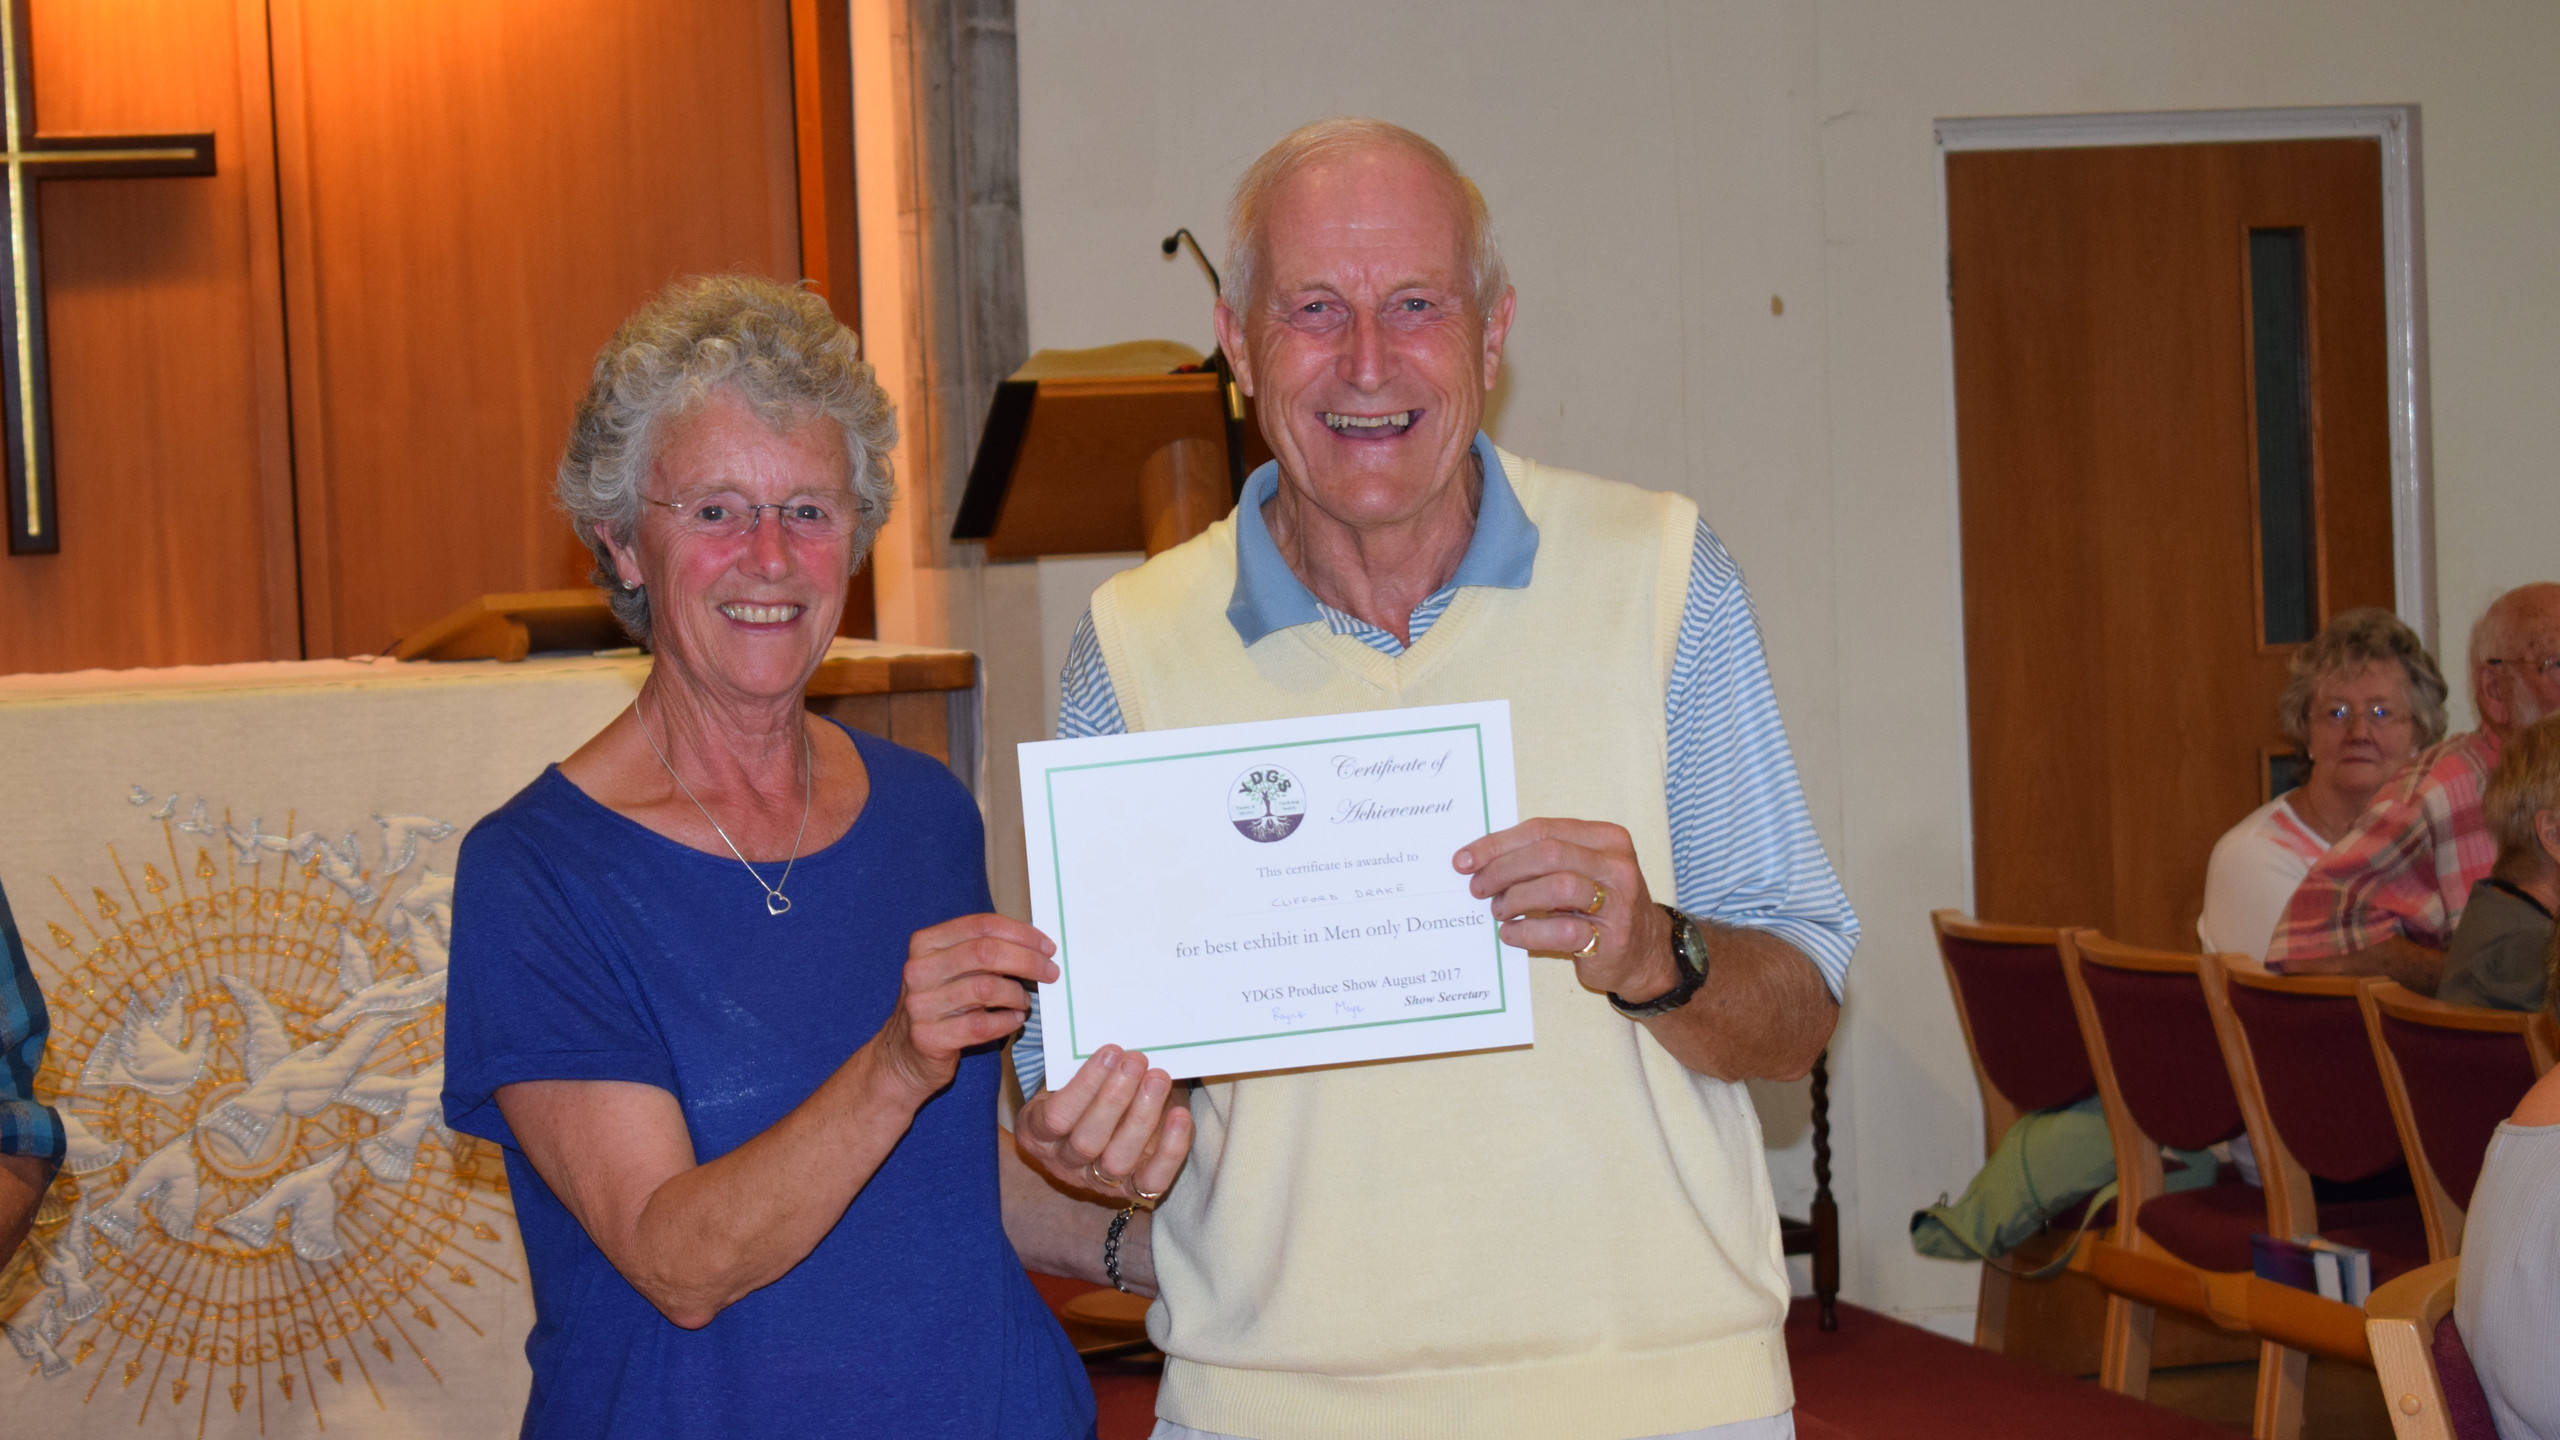 Cliff receives certificate from Cherie